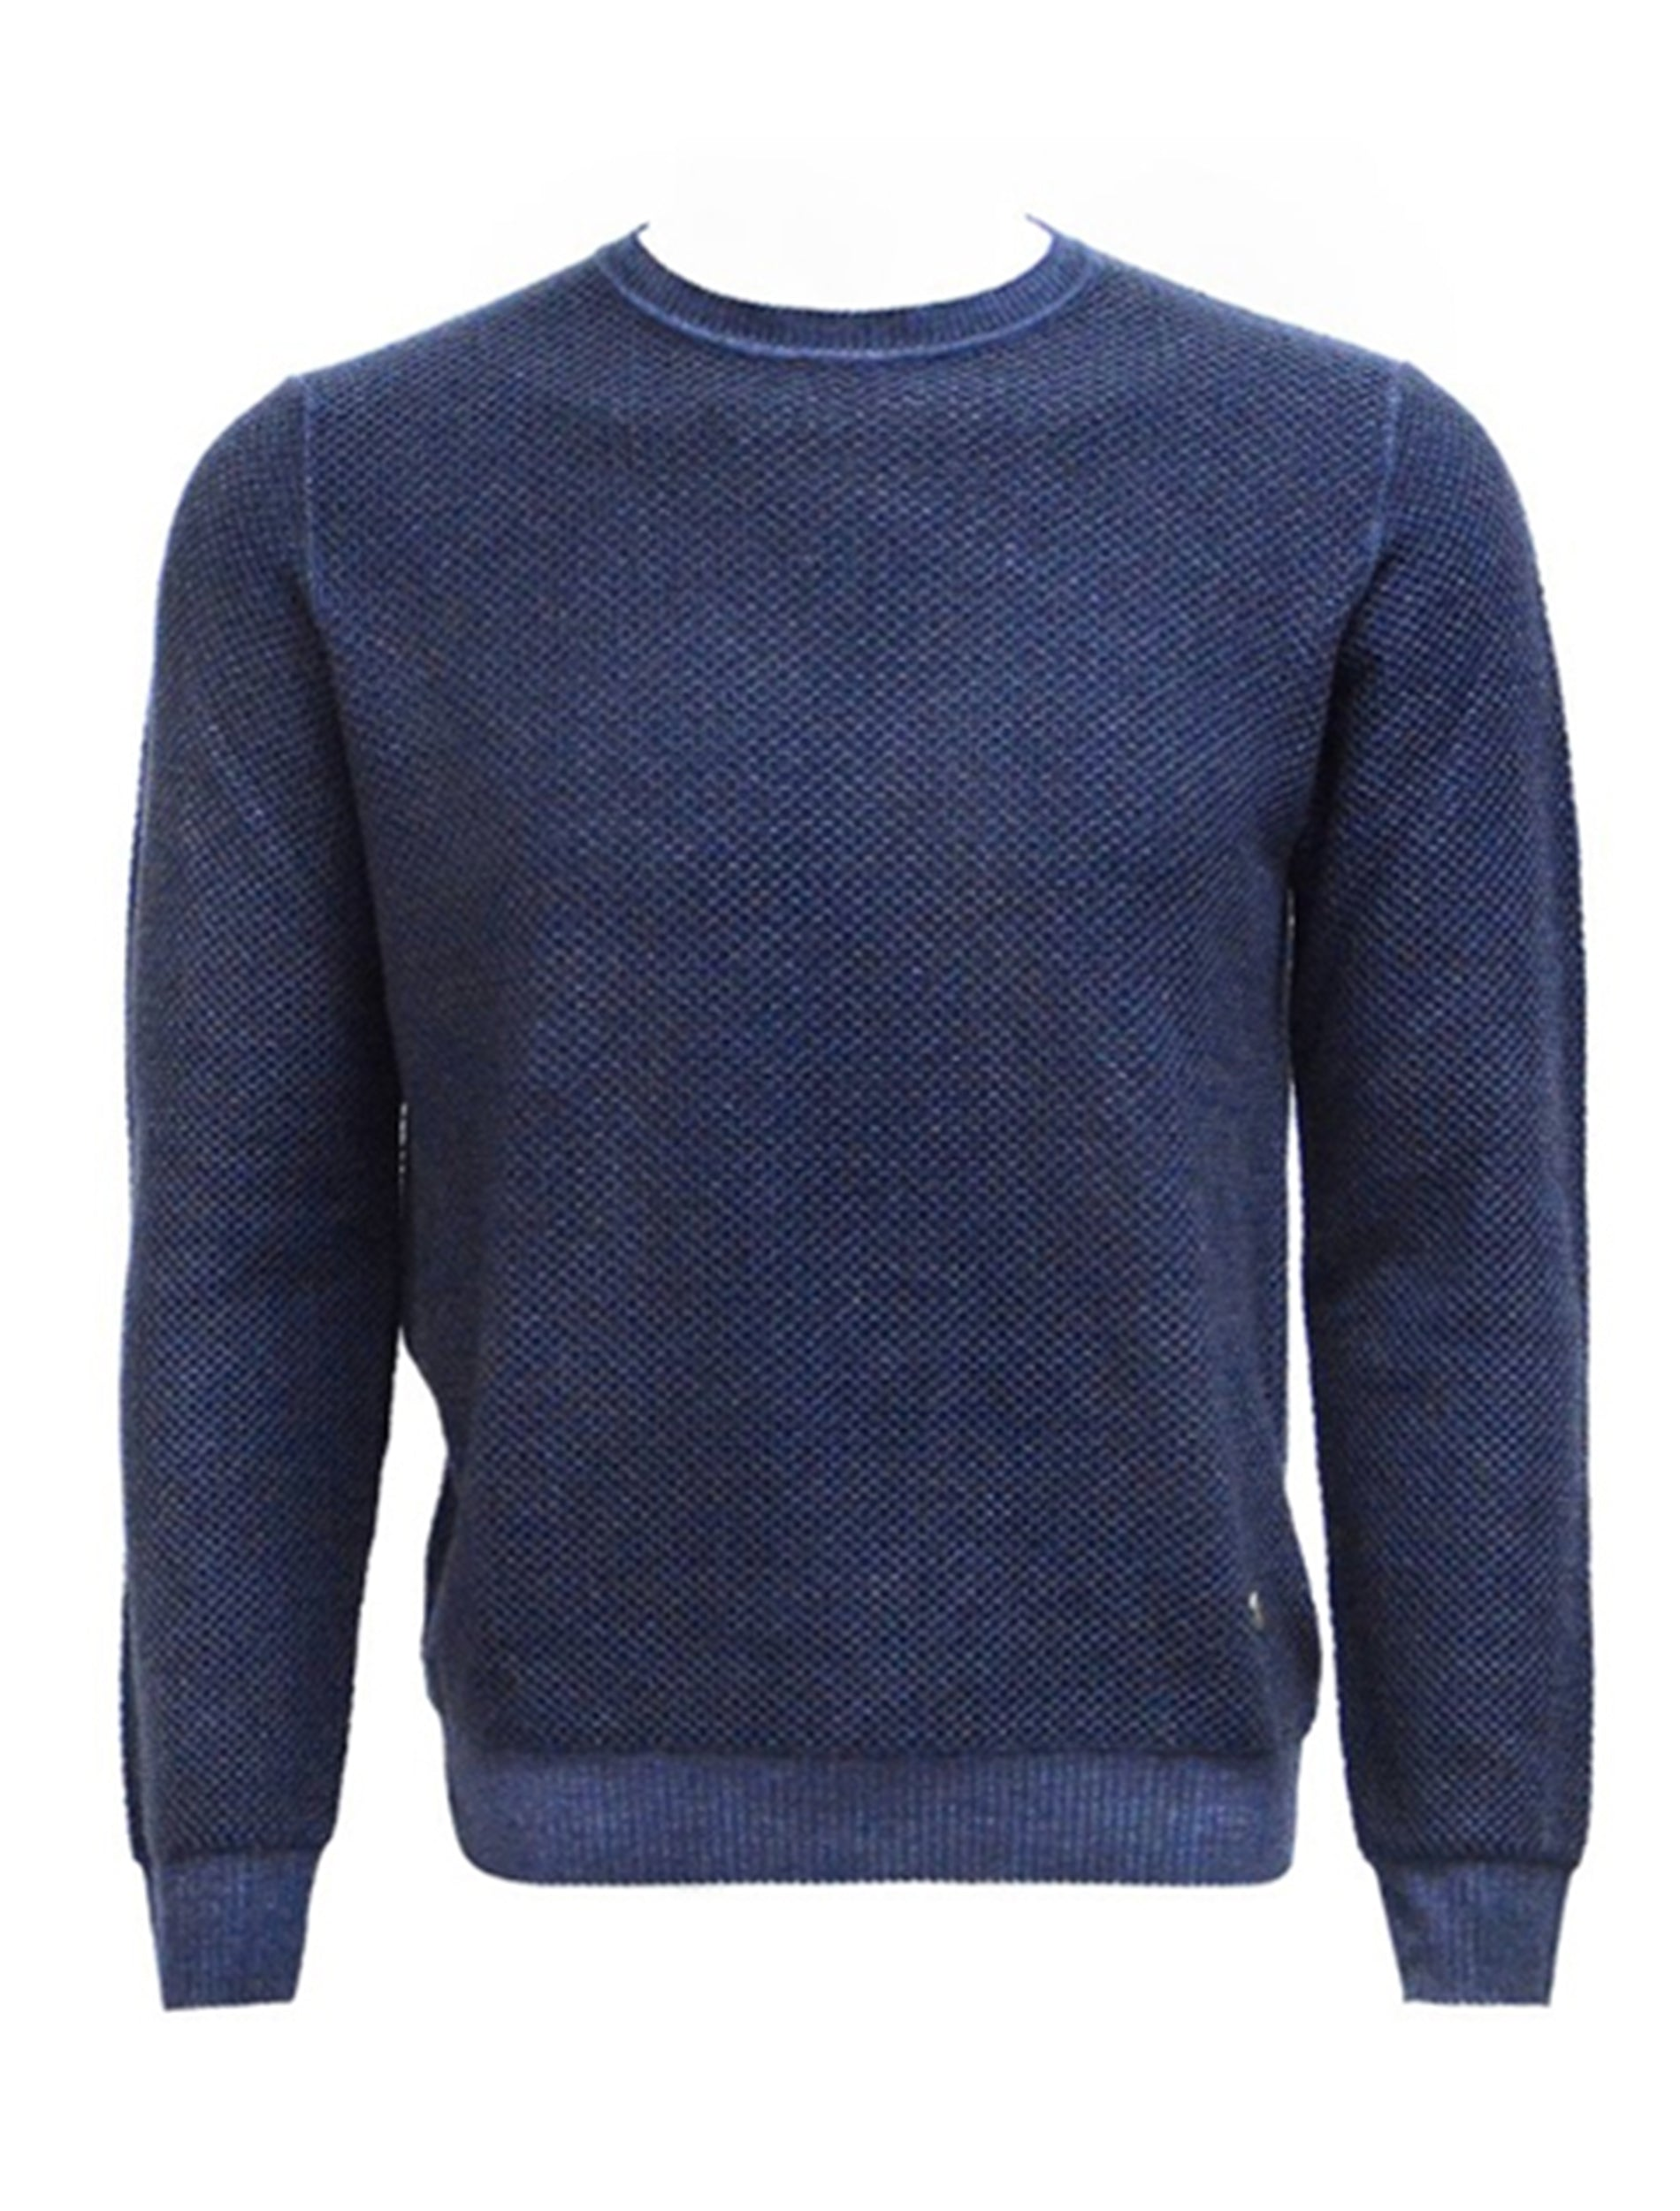 Navy Honeycomb Knit Sweater-Stone Rose